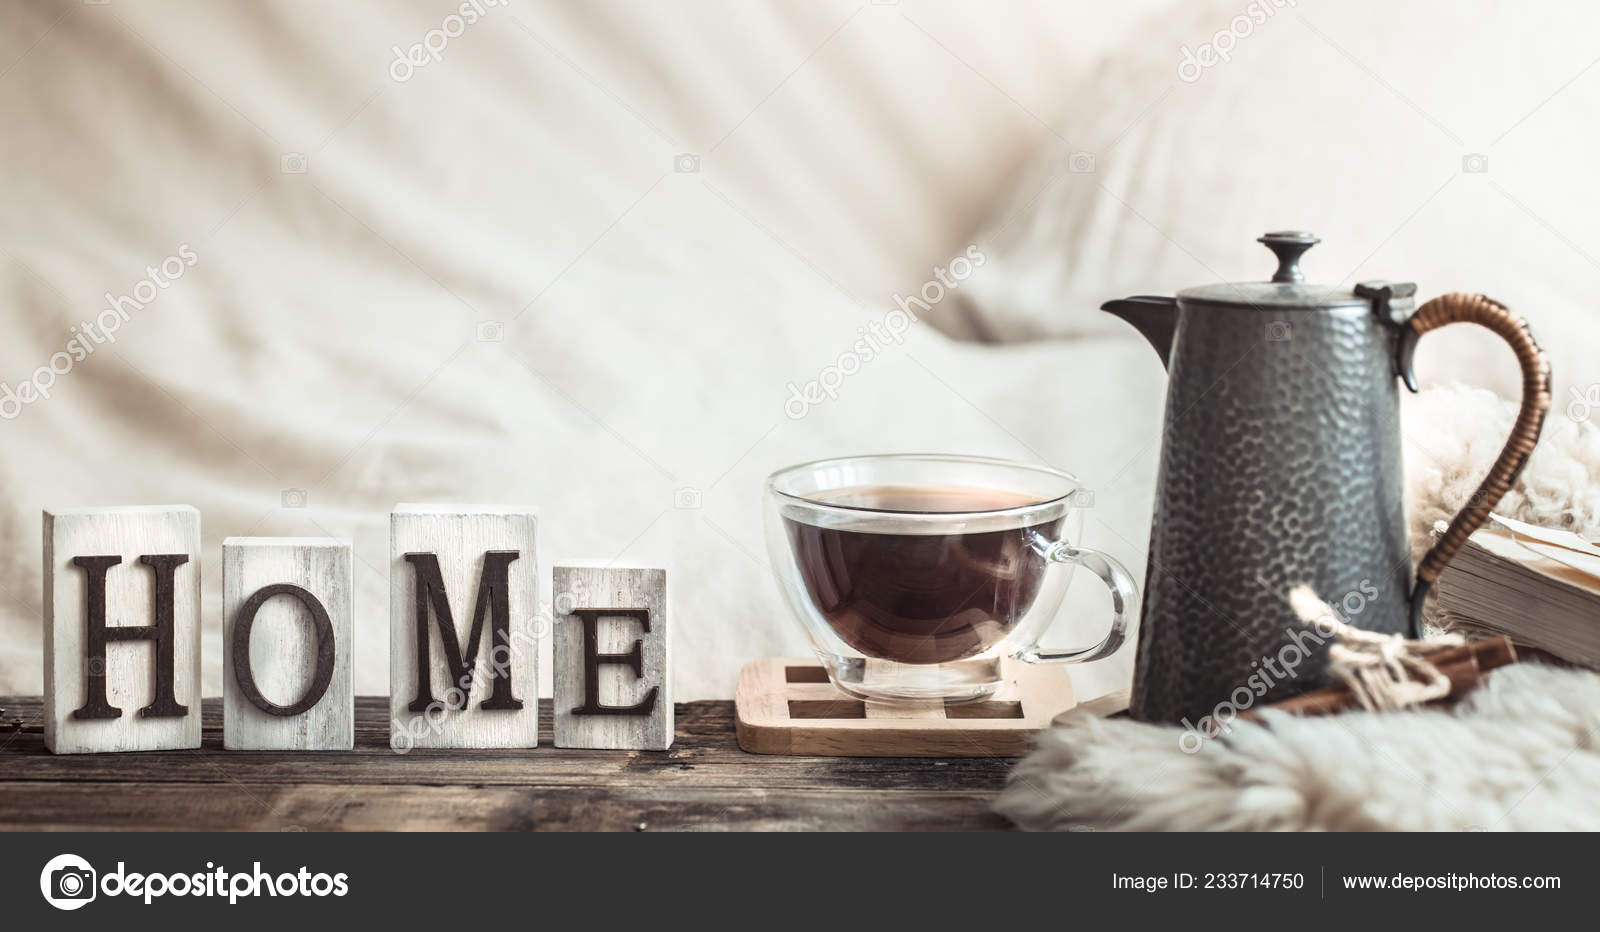 Home Atmosphere Interior Wooden Letters Decor Items Comfort Concept Stock Photo